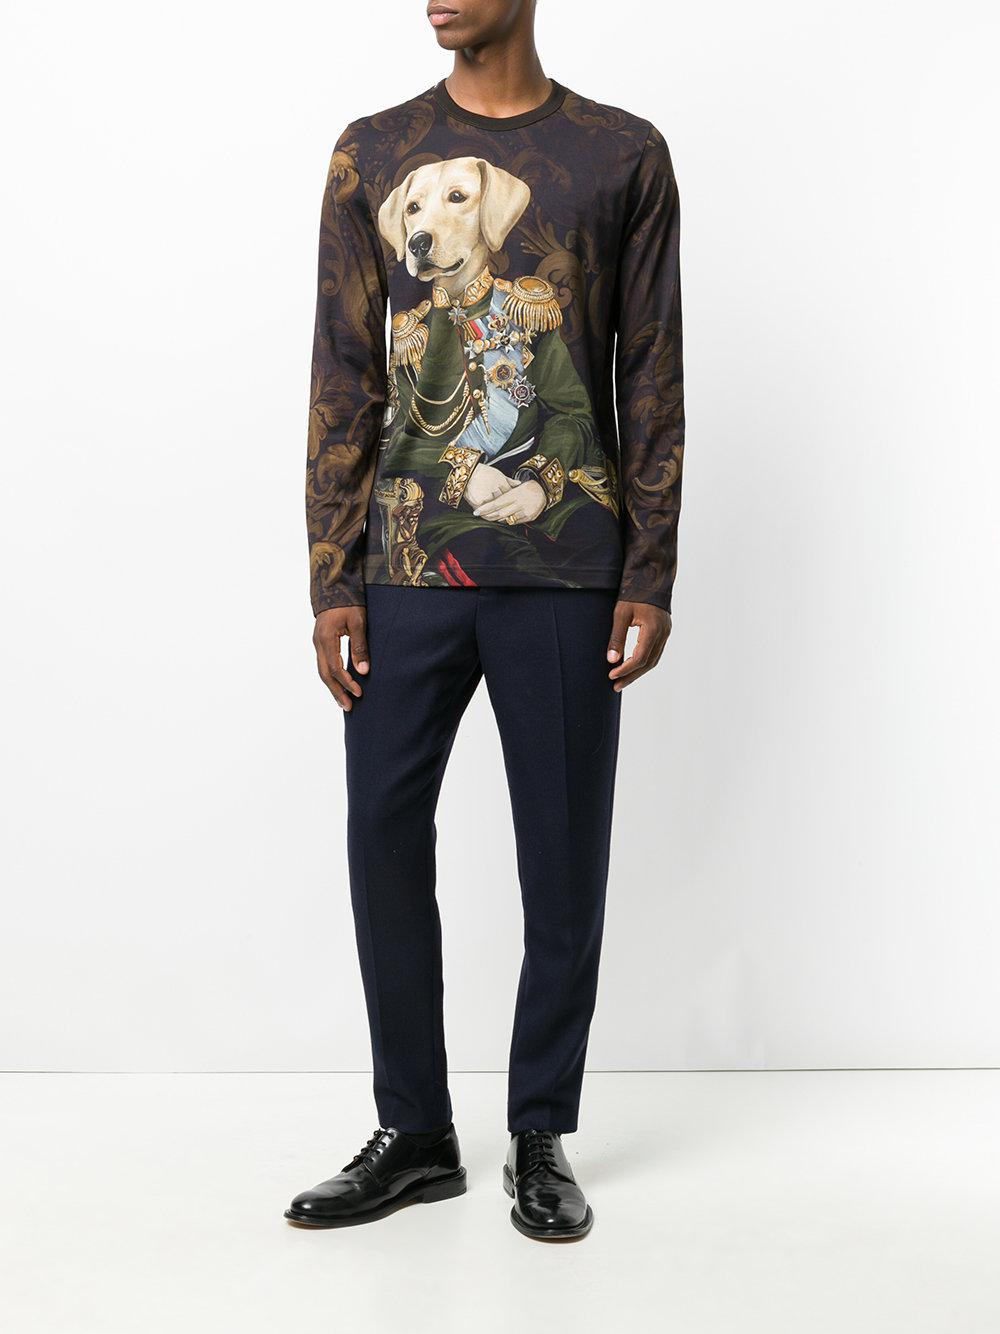 c1fb5a36 Dolce & Gabbana Dog Soldier Print Top in Brown for Men - Lyst